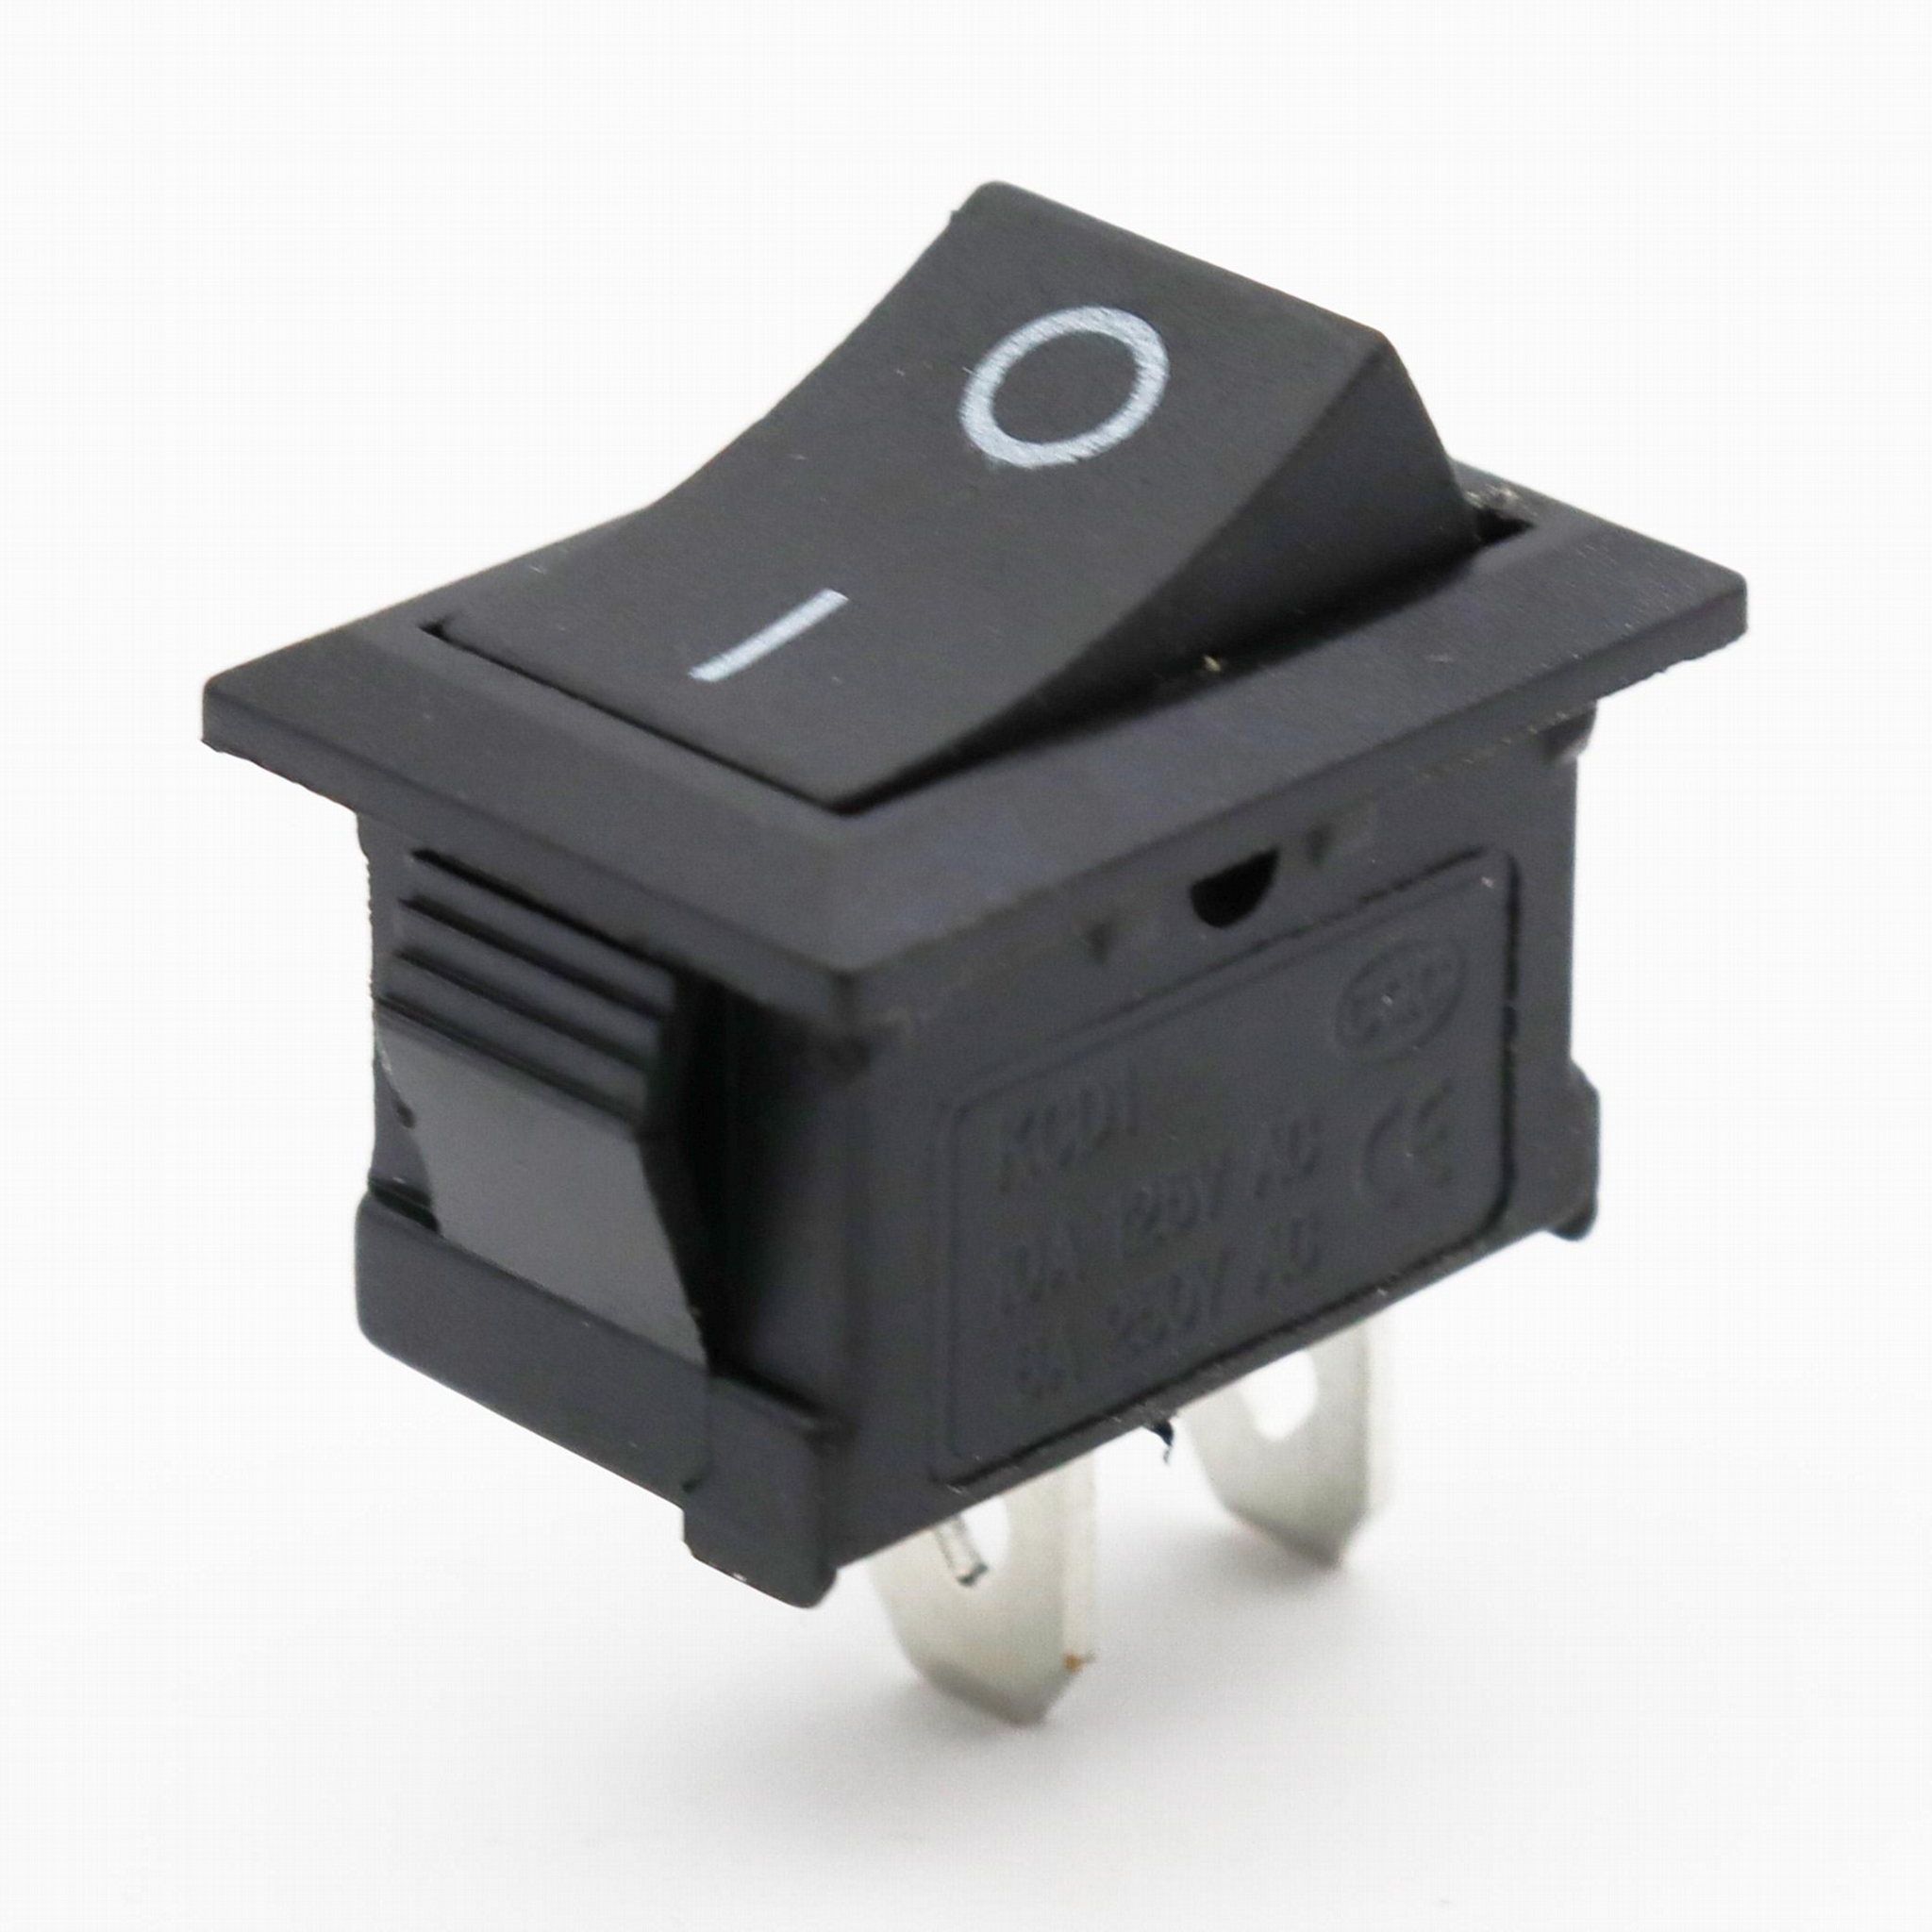 KCD1-101-1 21*15mm 2pins rocker switches 3